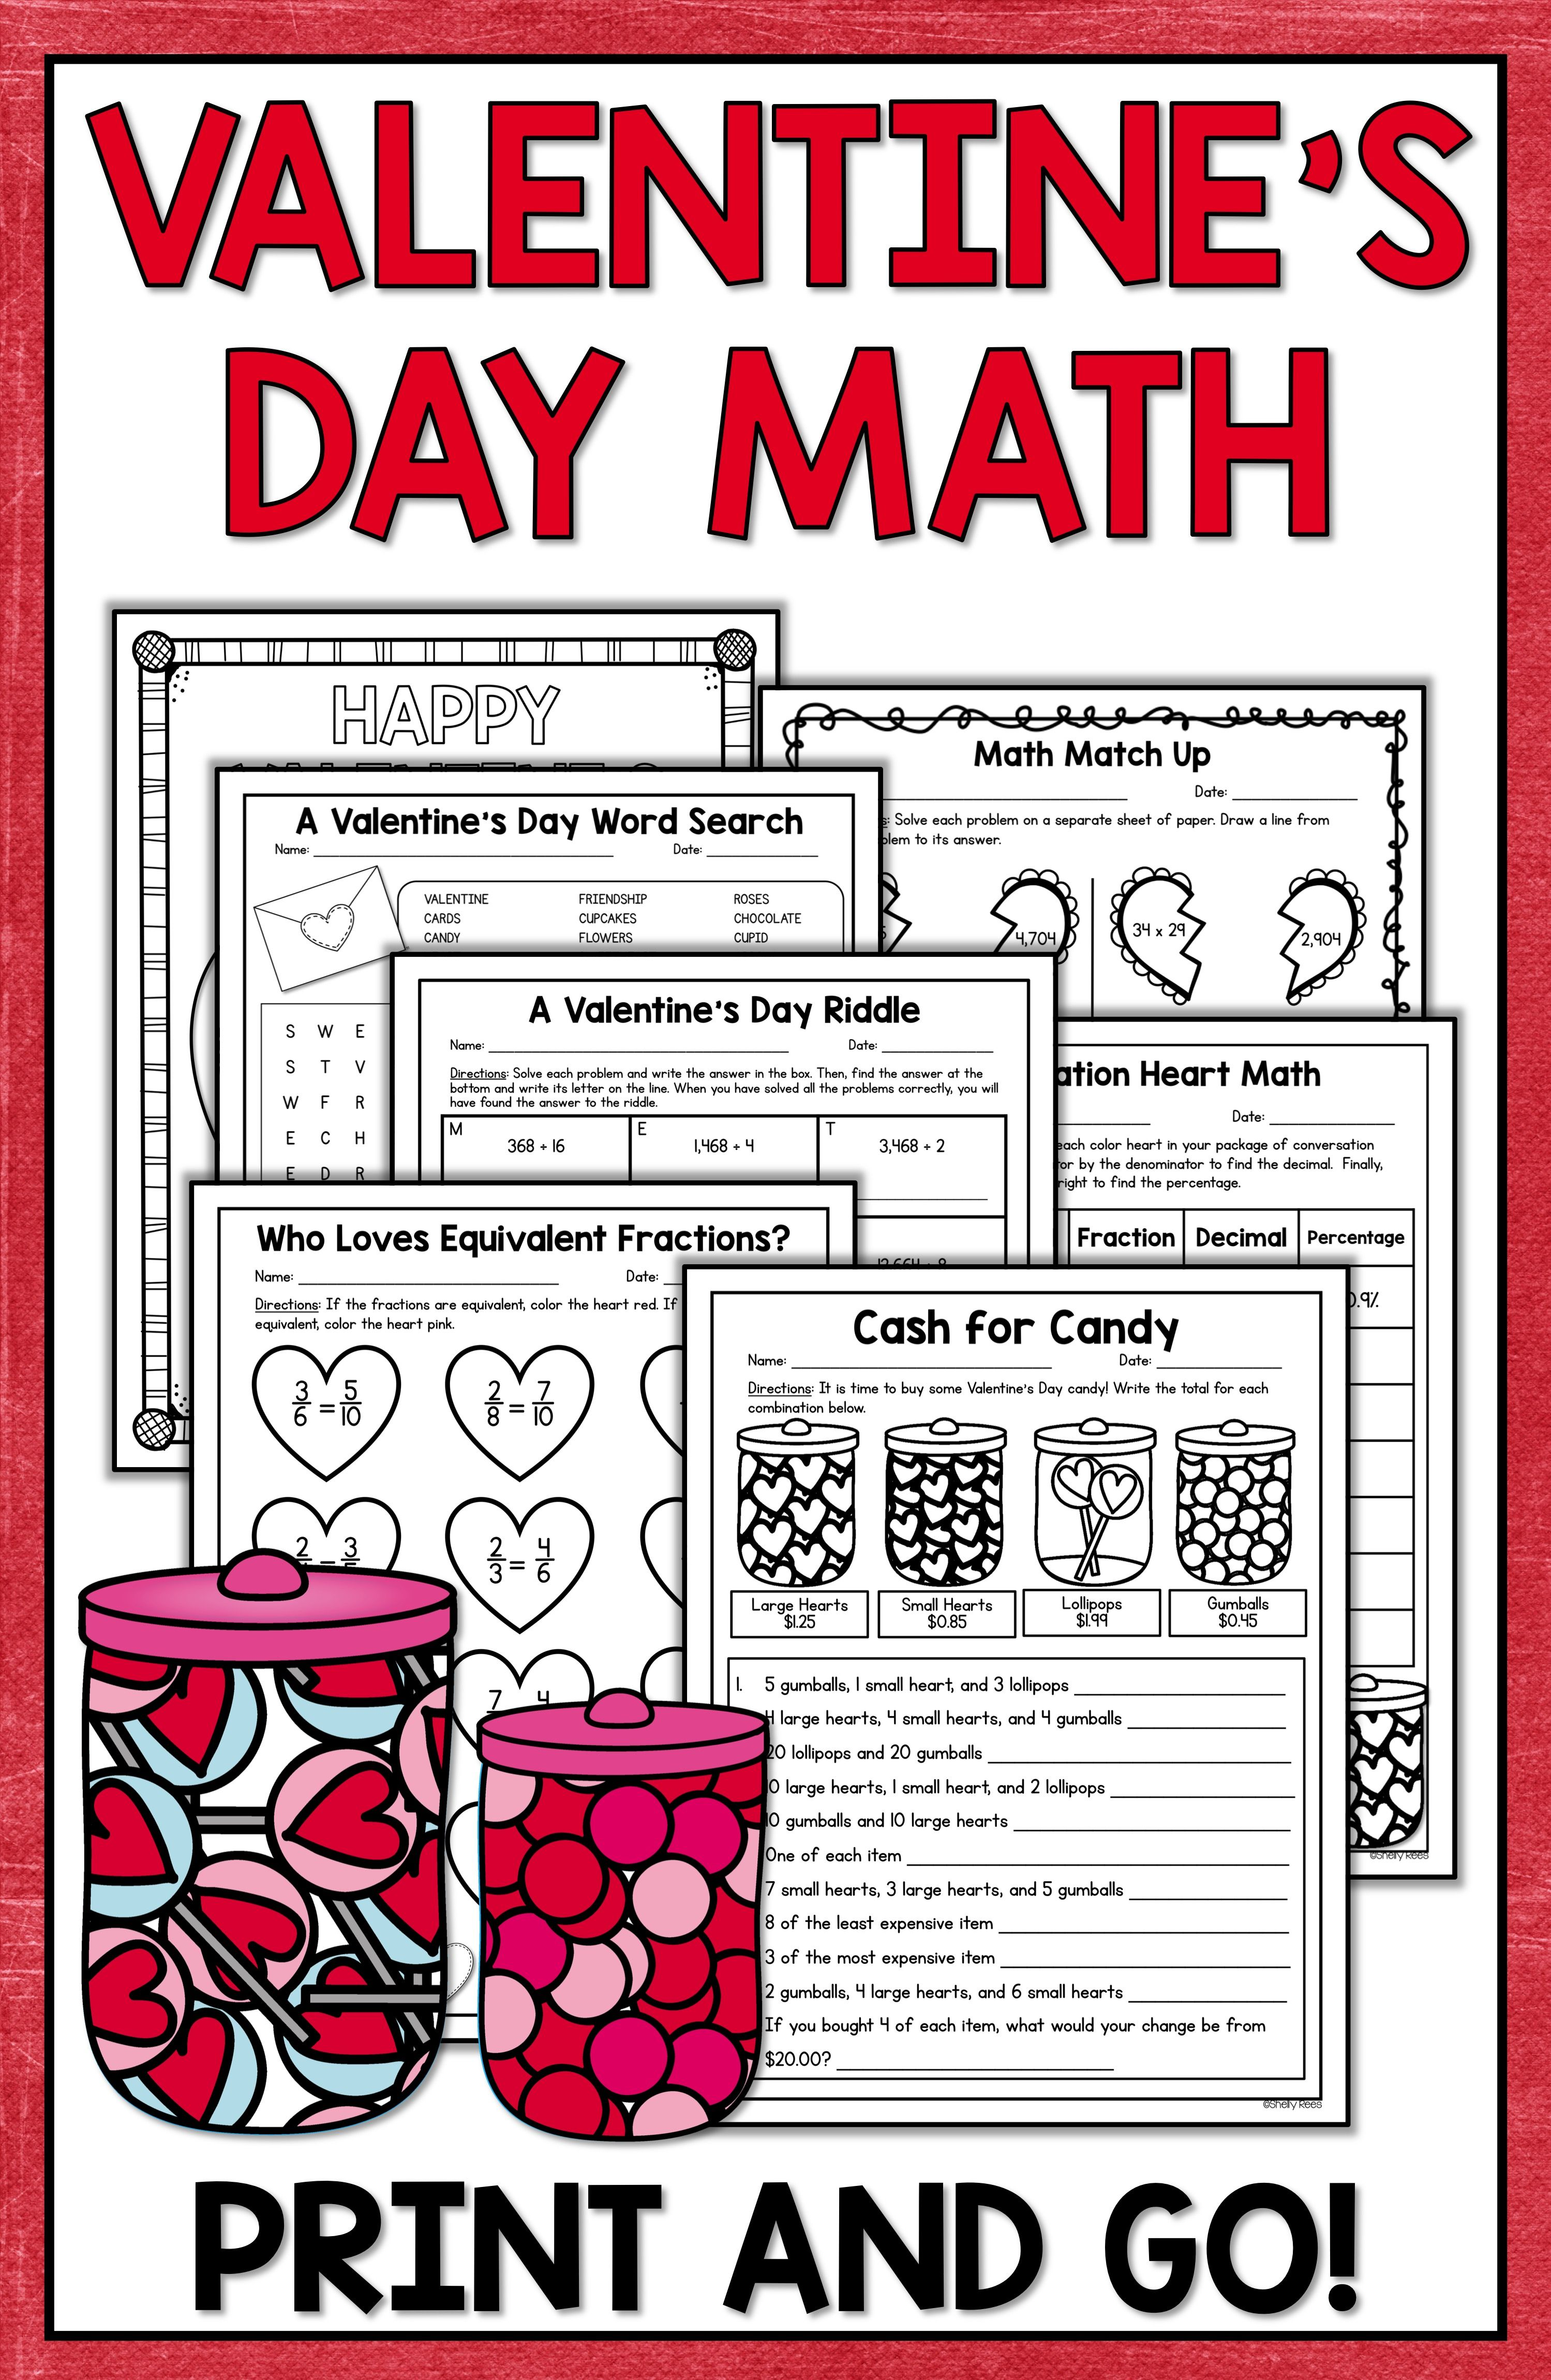 small resolution of Valentine's Day Math - Valentine's Day Activities   Math valentines